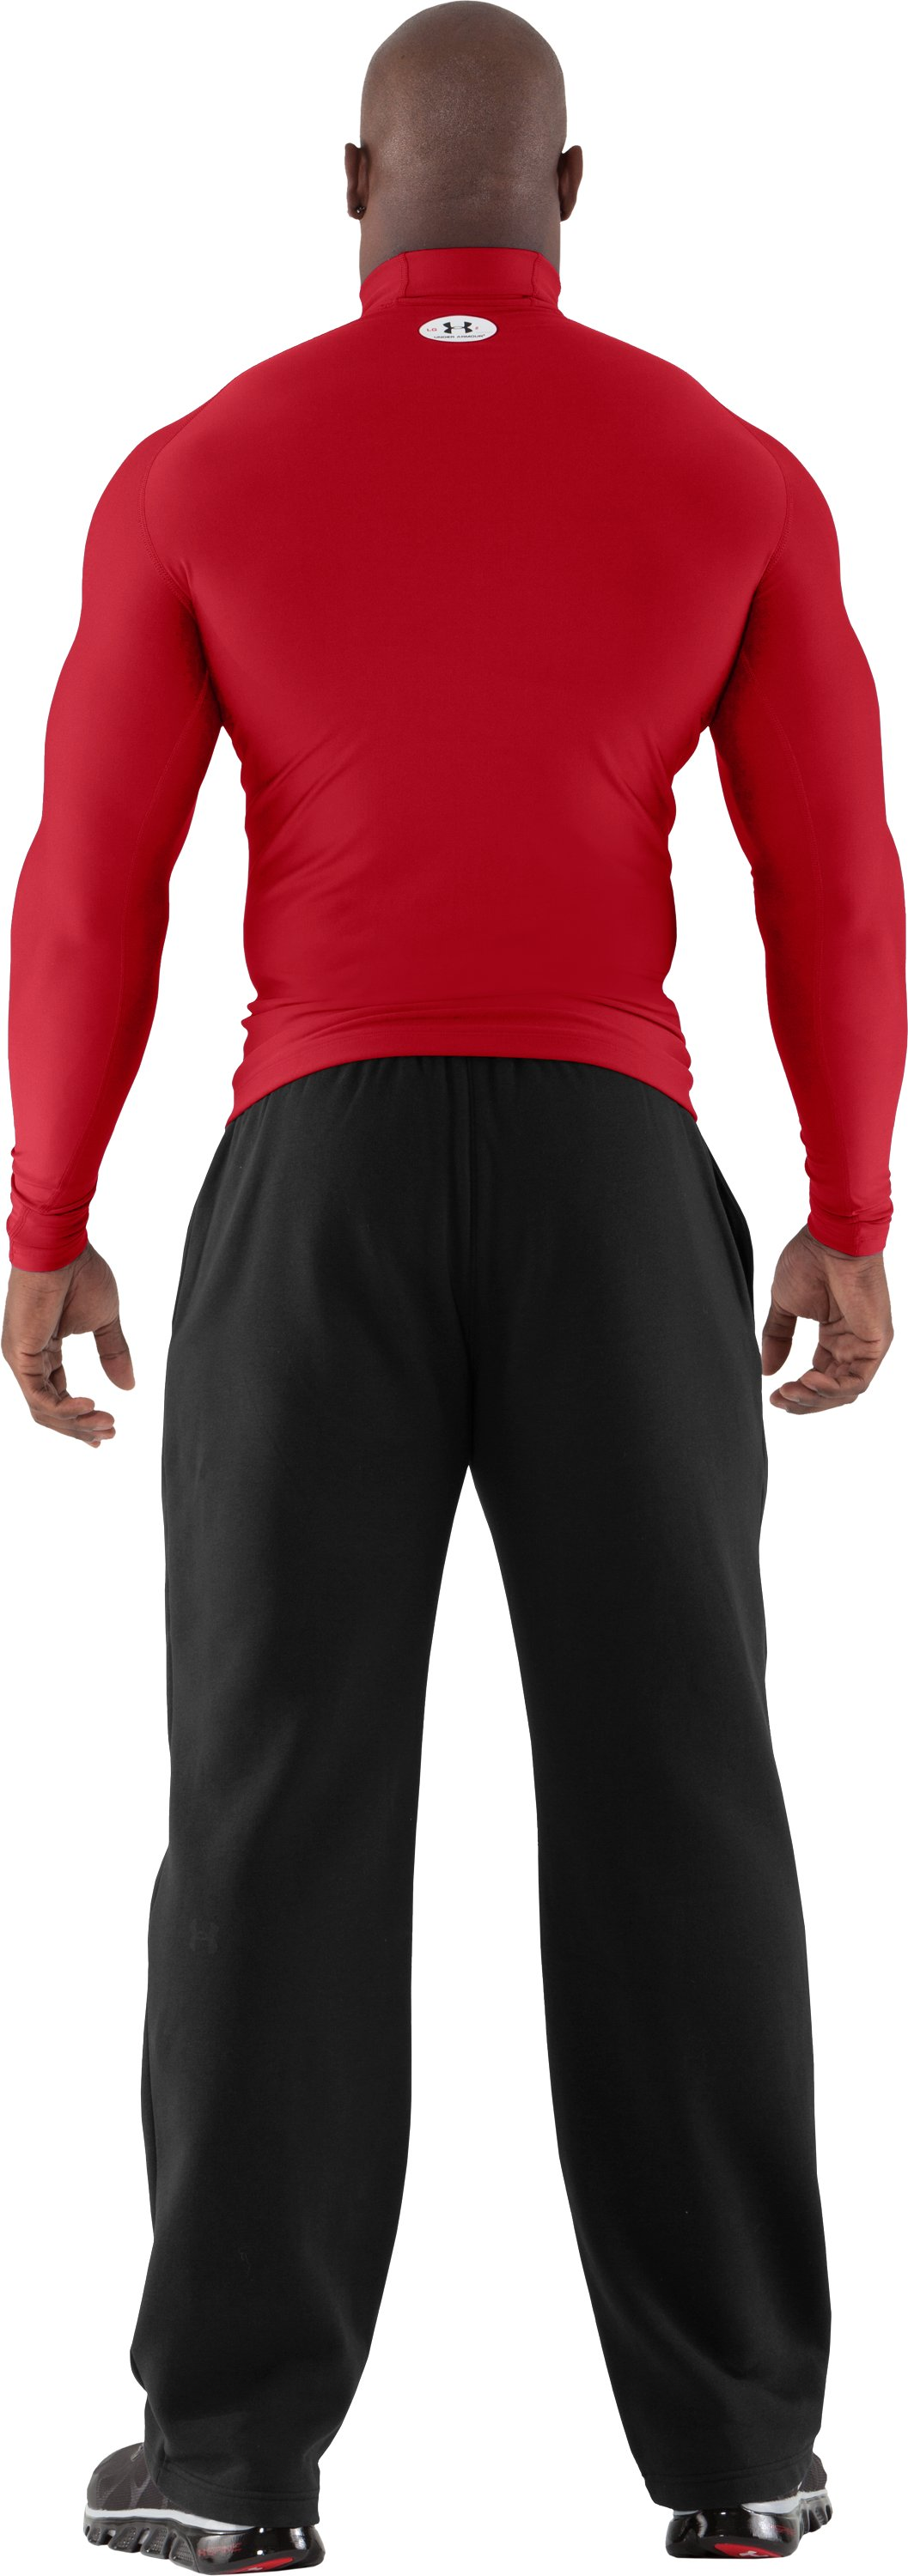 Men's ColdGear® Evo Long Sleeve Compression Mock, Red, Back